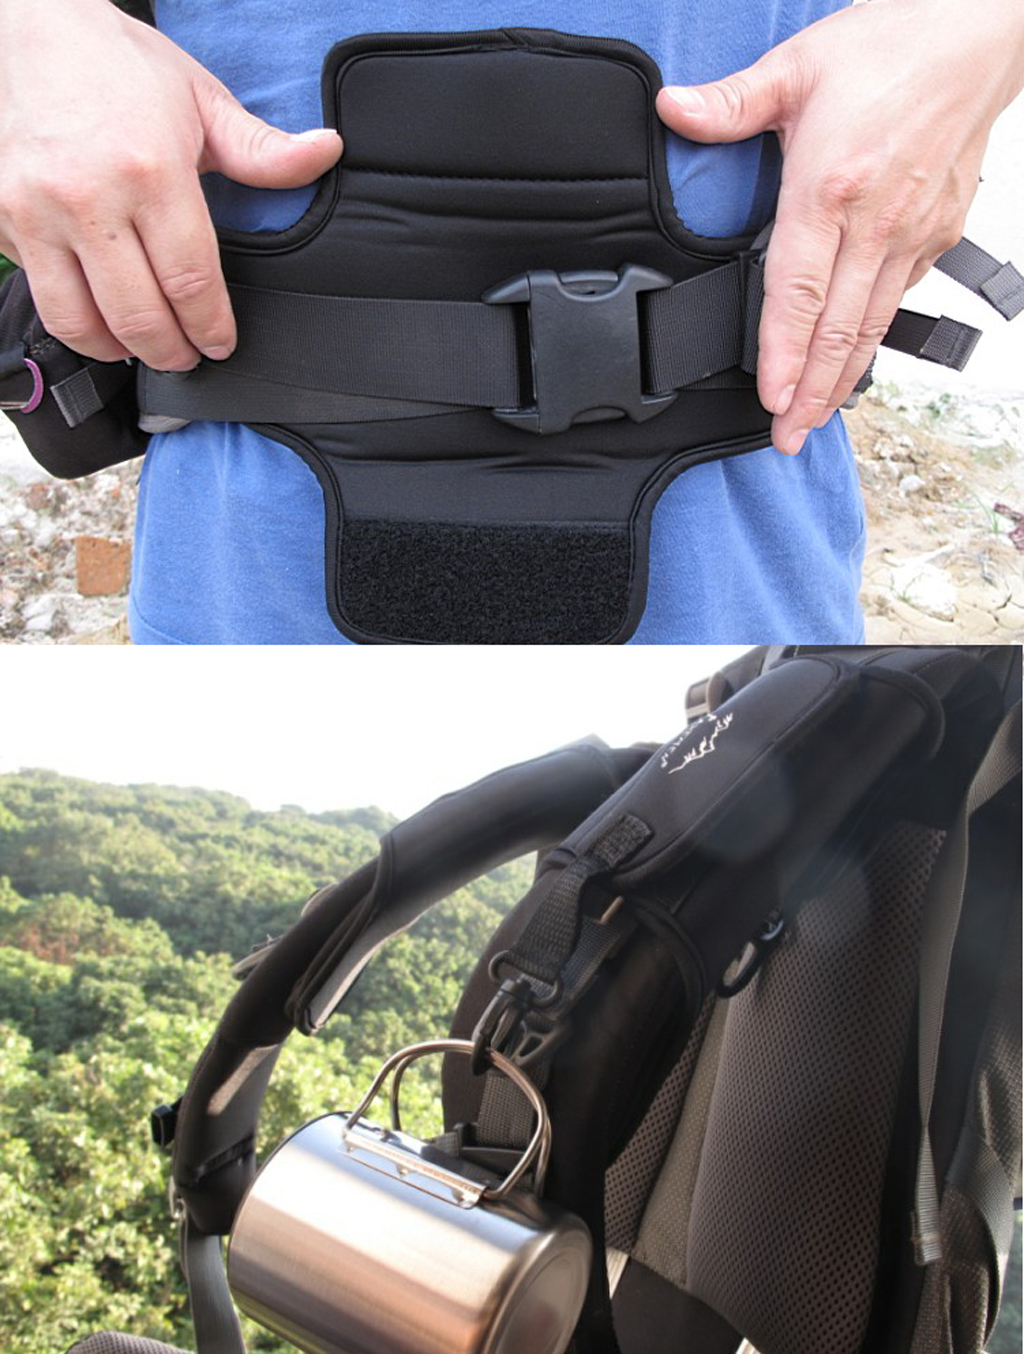 1Pair Shoulder Strap Belt Cushion Pad for Outdoor Travel Camping Hiking Backpacking Damping Climbing Accessory